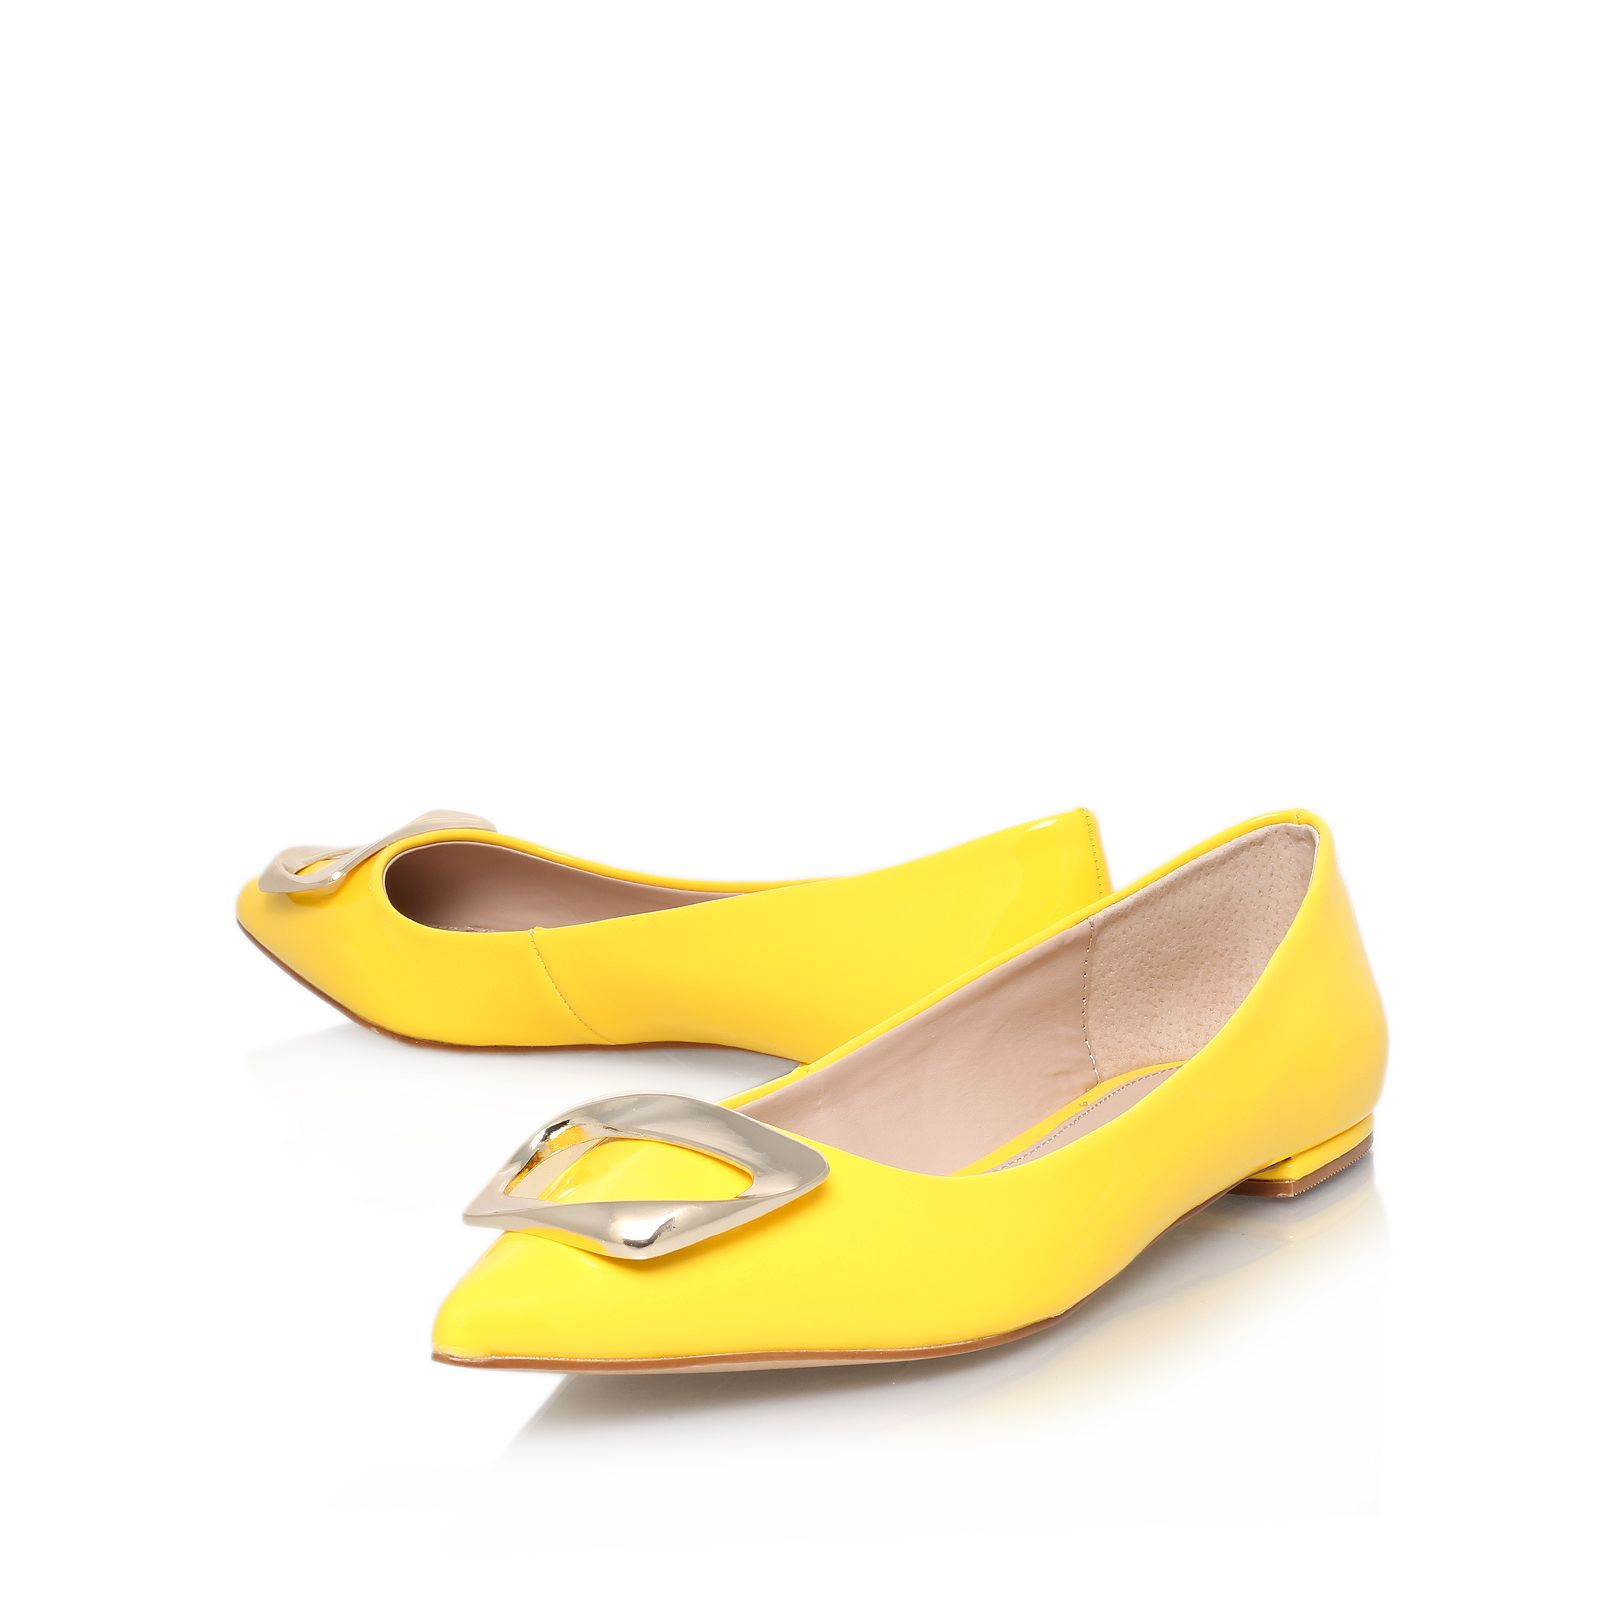 Lassie flat slipper shoes